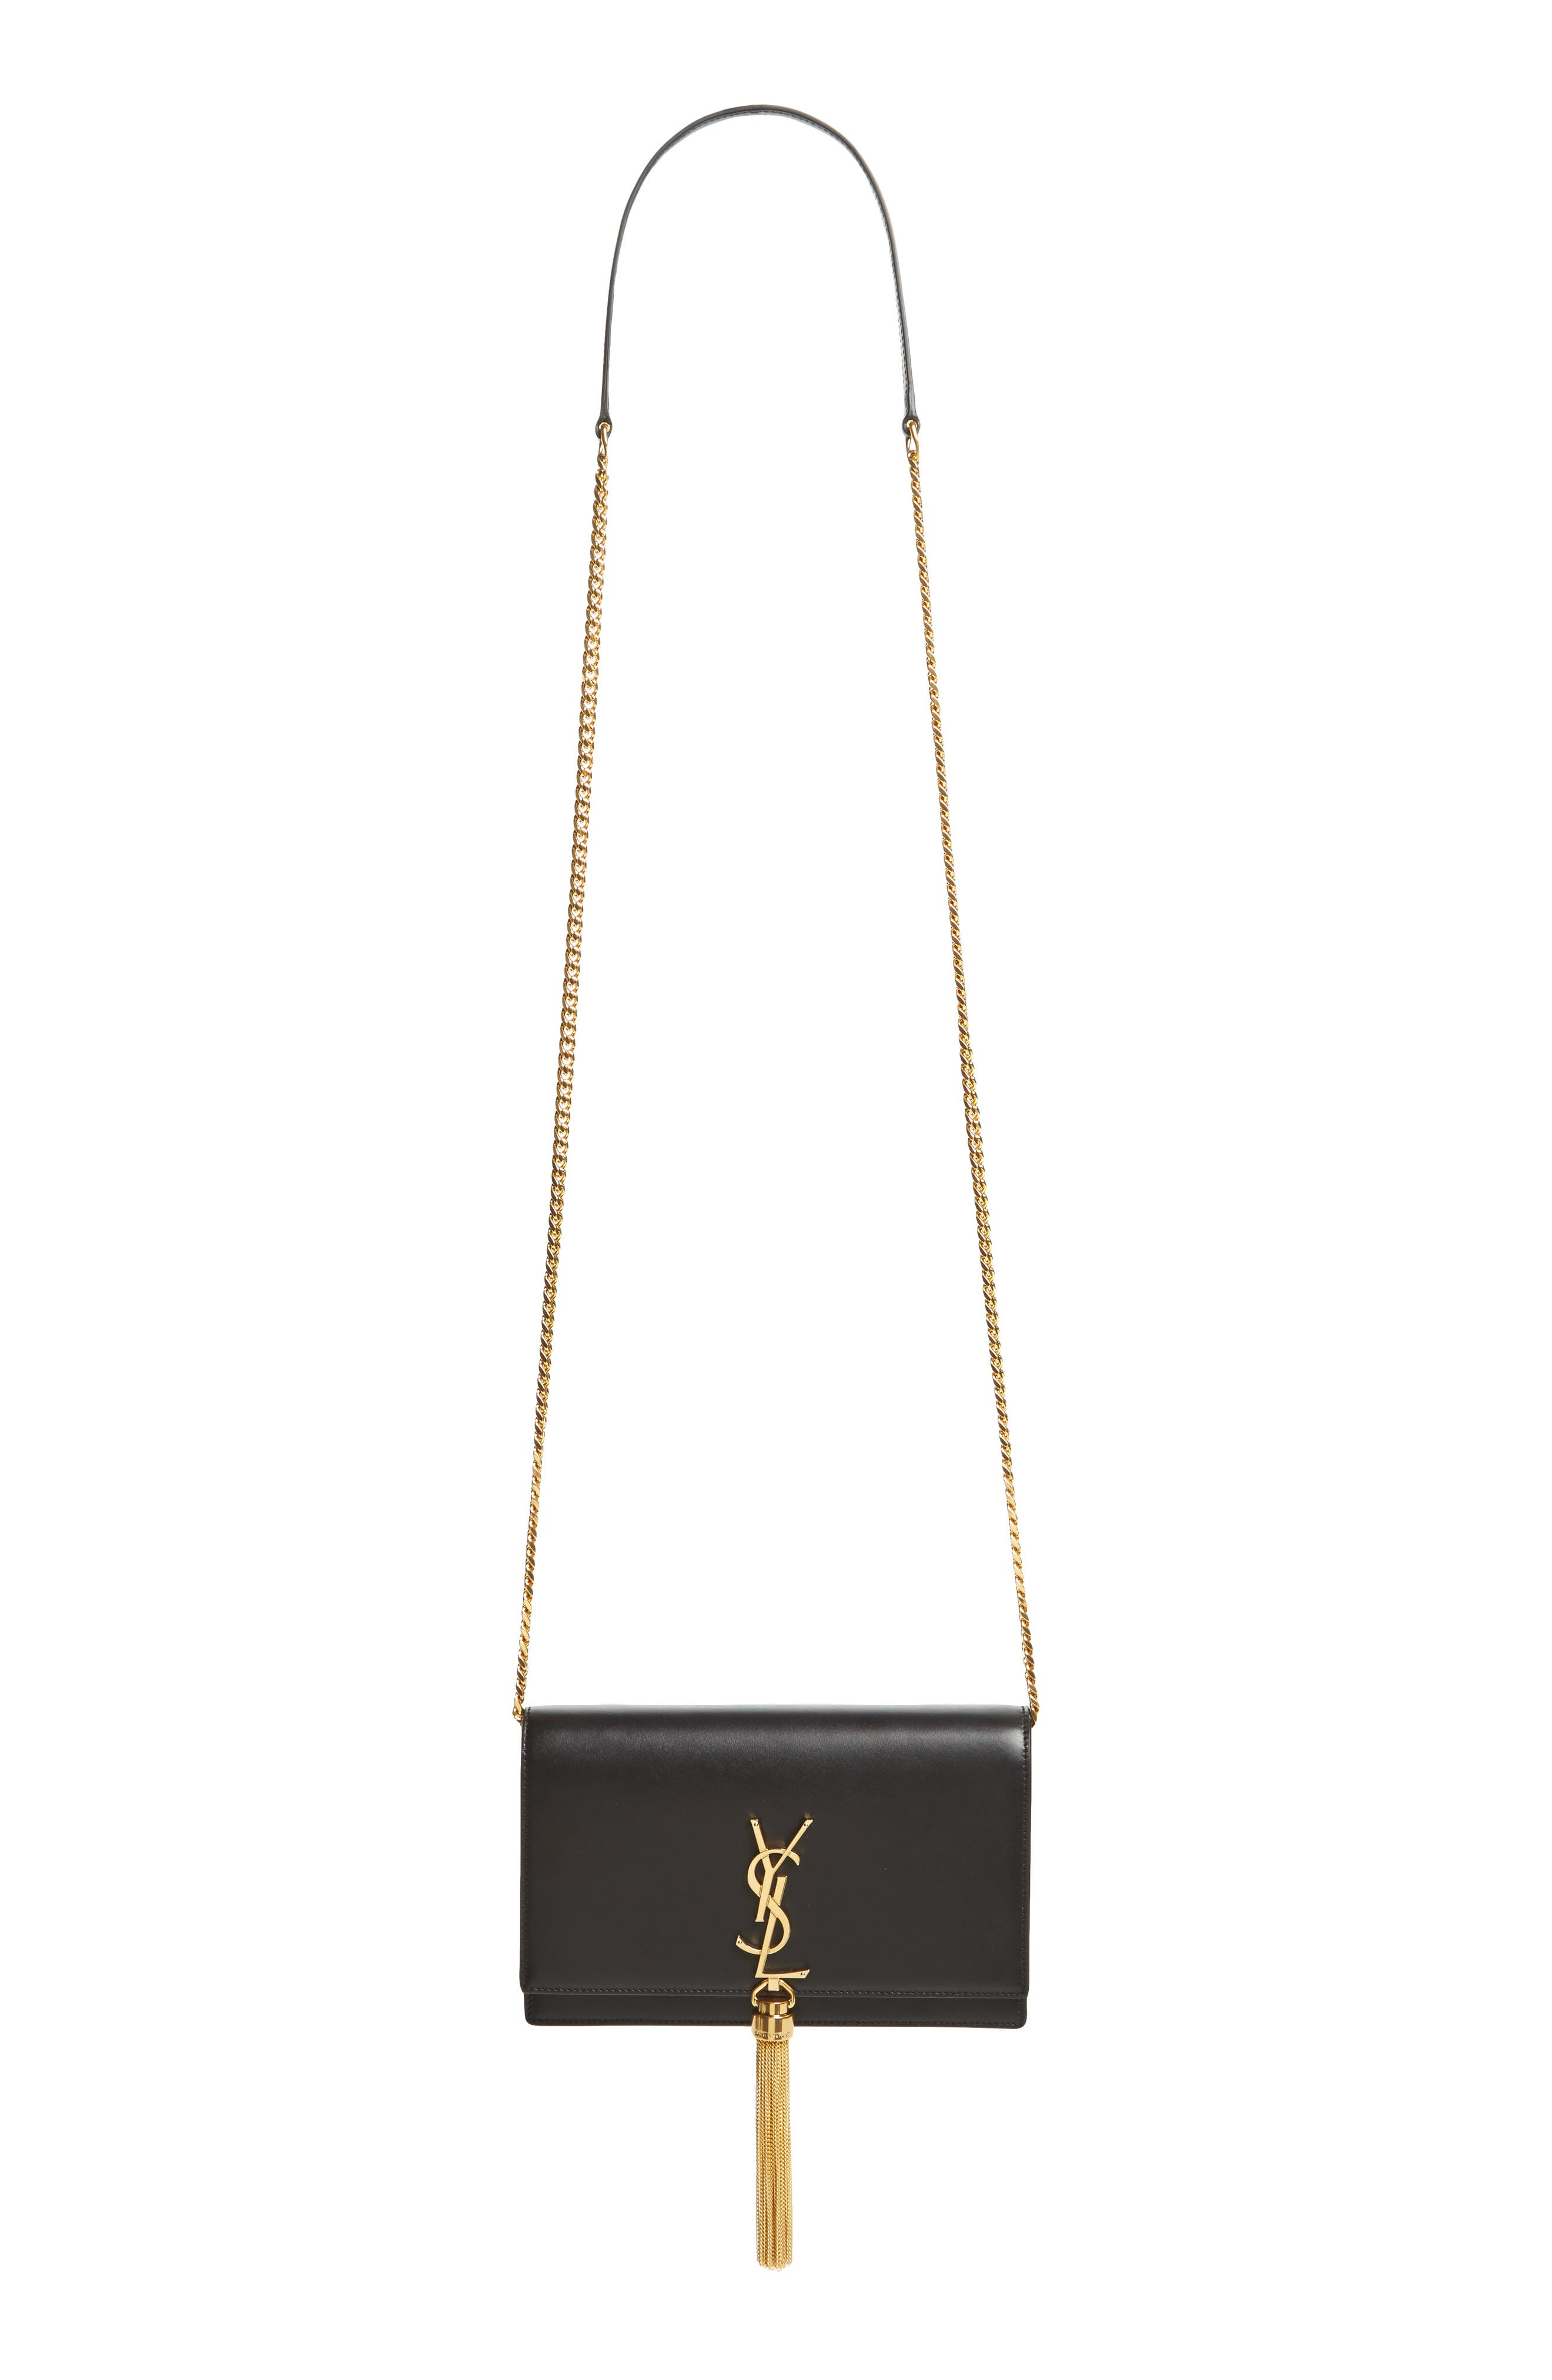 Alternate Image 1 Selected - Saint Laurent Small Monogram Calfskin Leather Wallet on a Chain